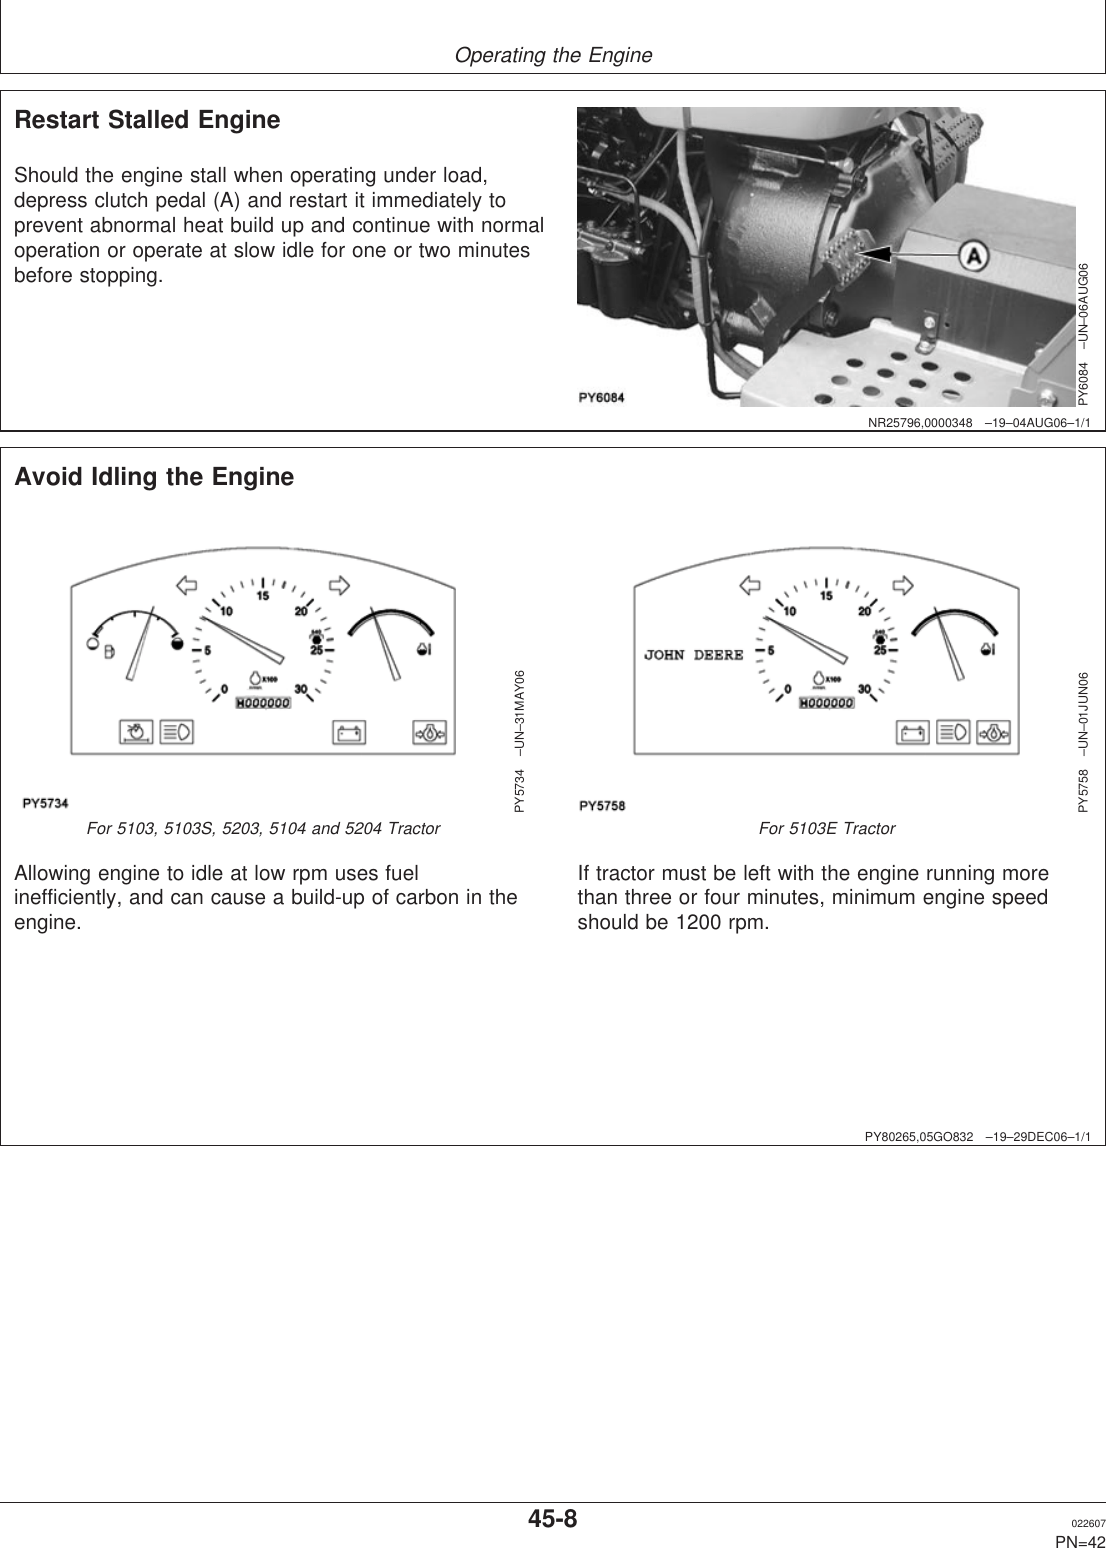 hight resolution of john deere 5103 ignition switch diagram